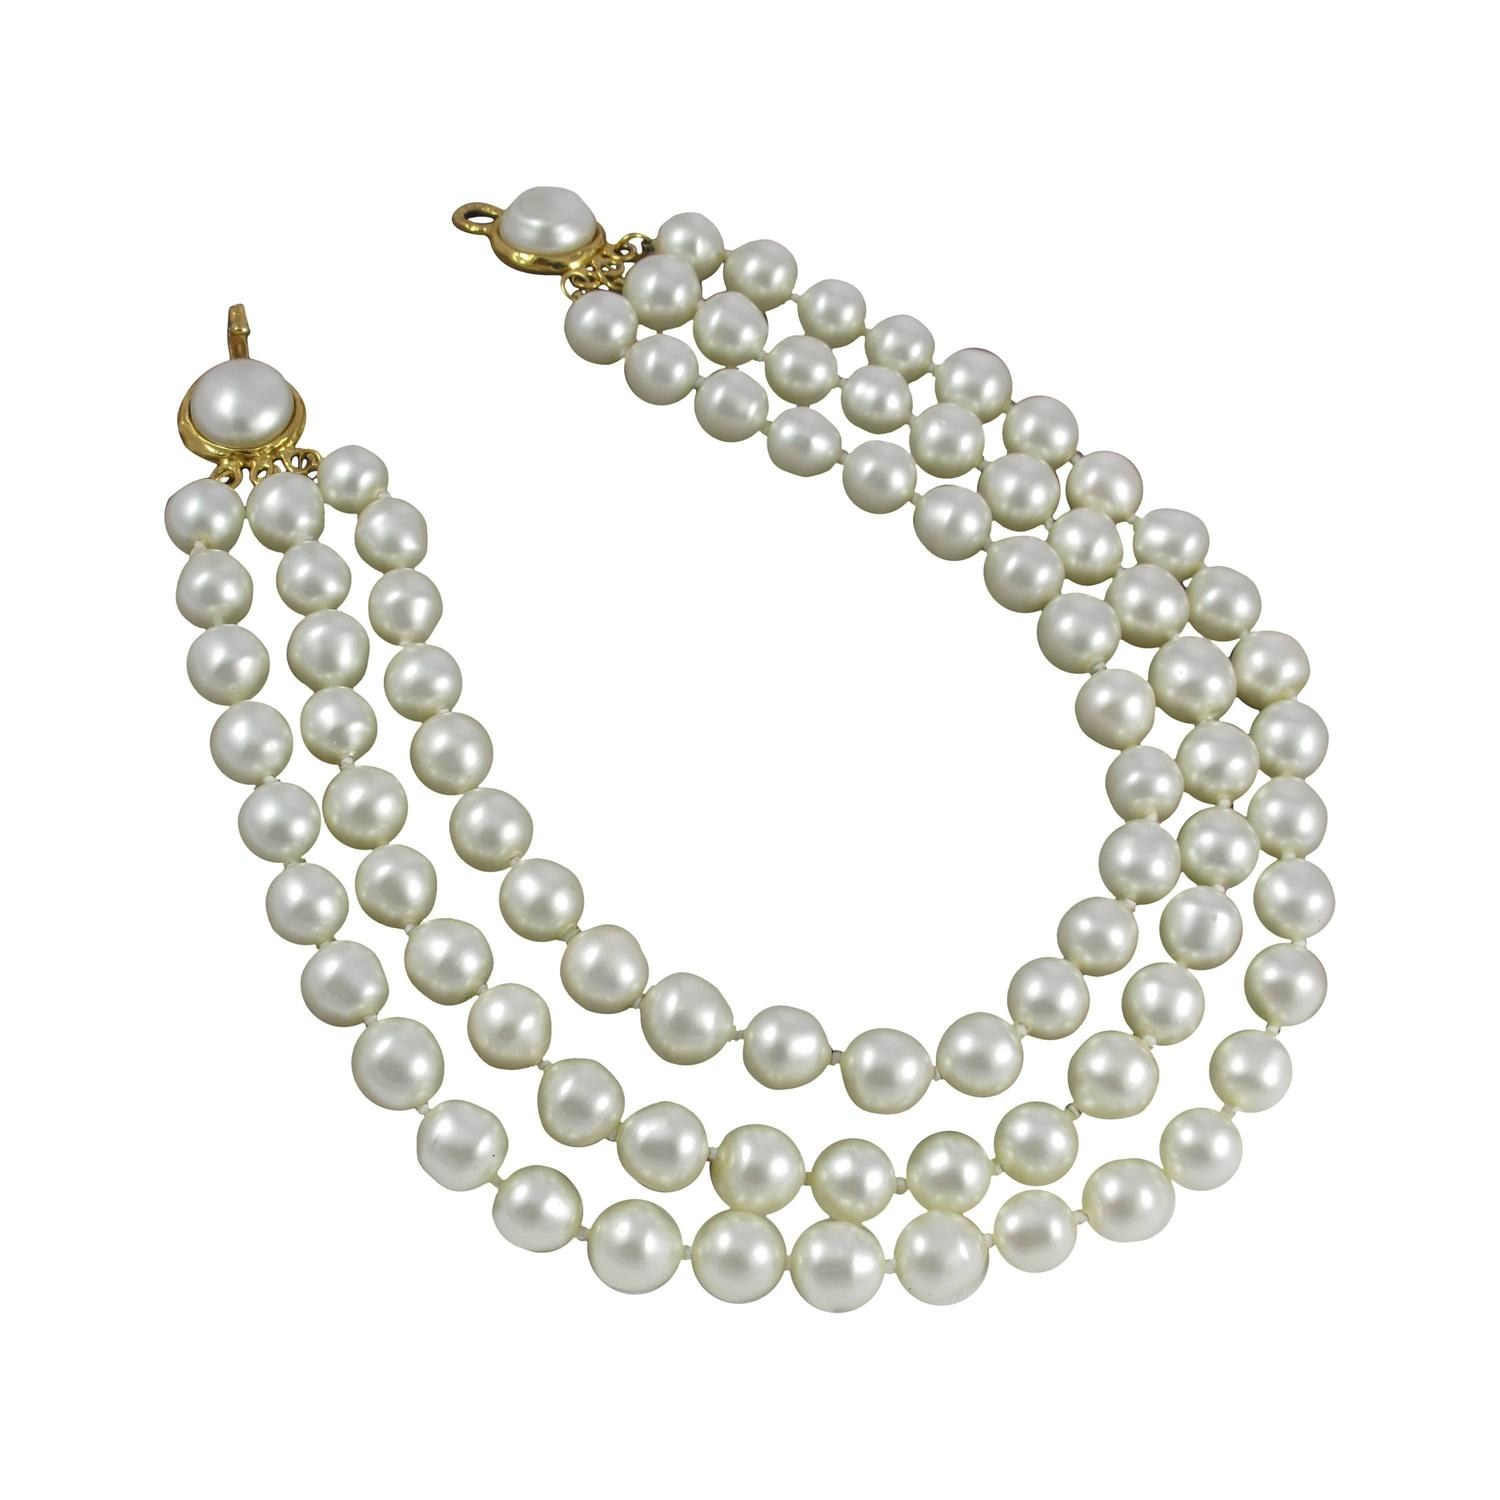 1970's Chanel Triple Strand Oversize Faux Pearl Necklace Choker At 1stdibs